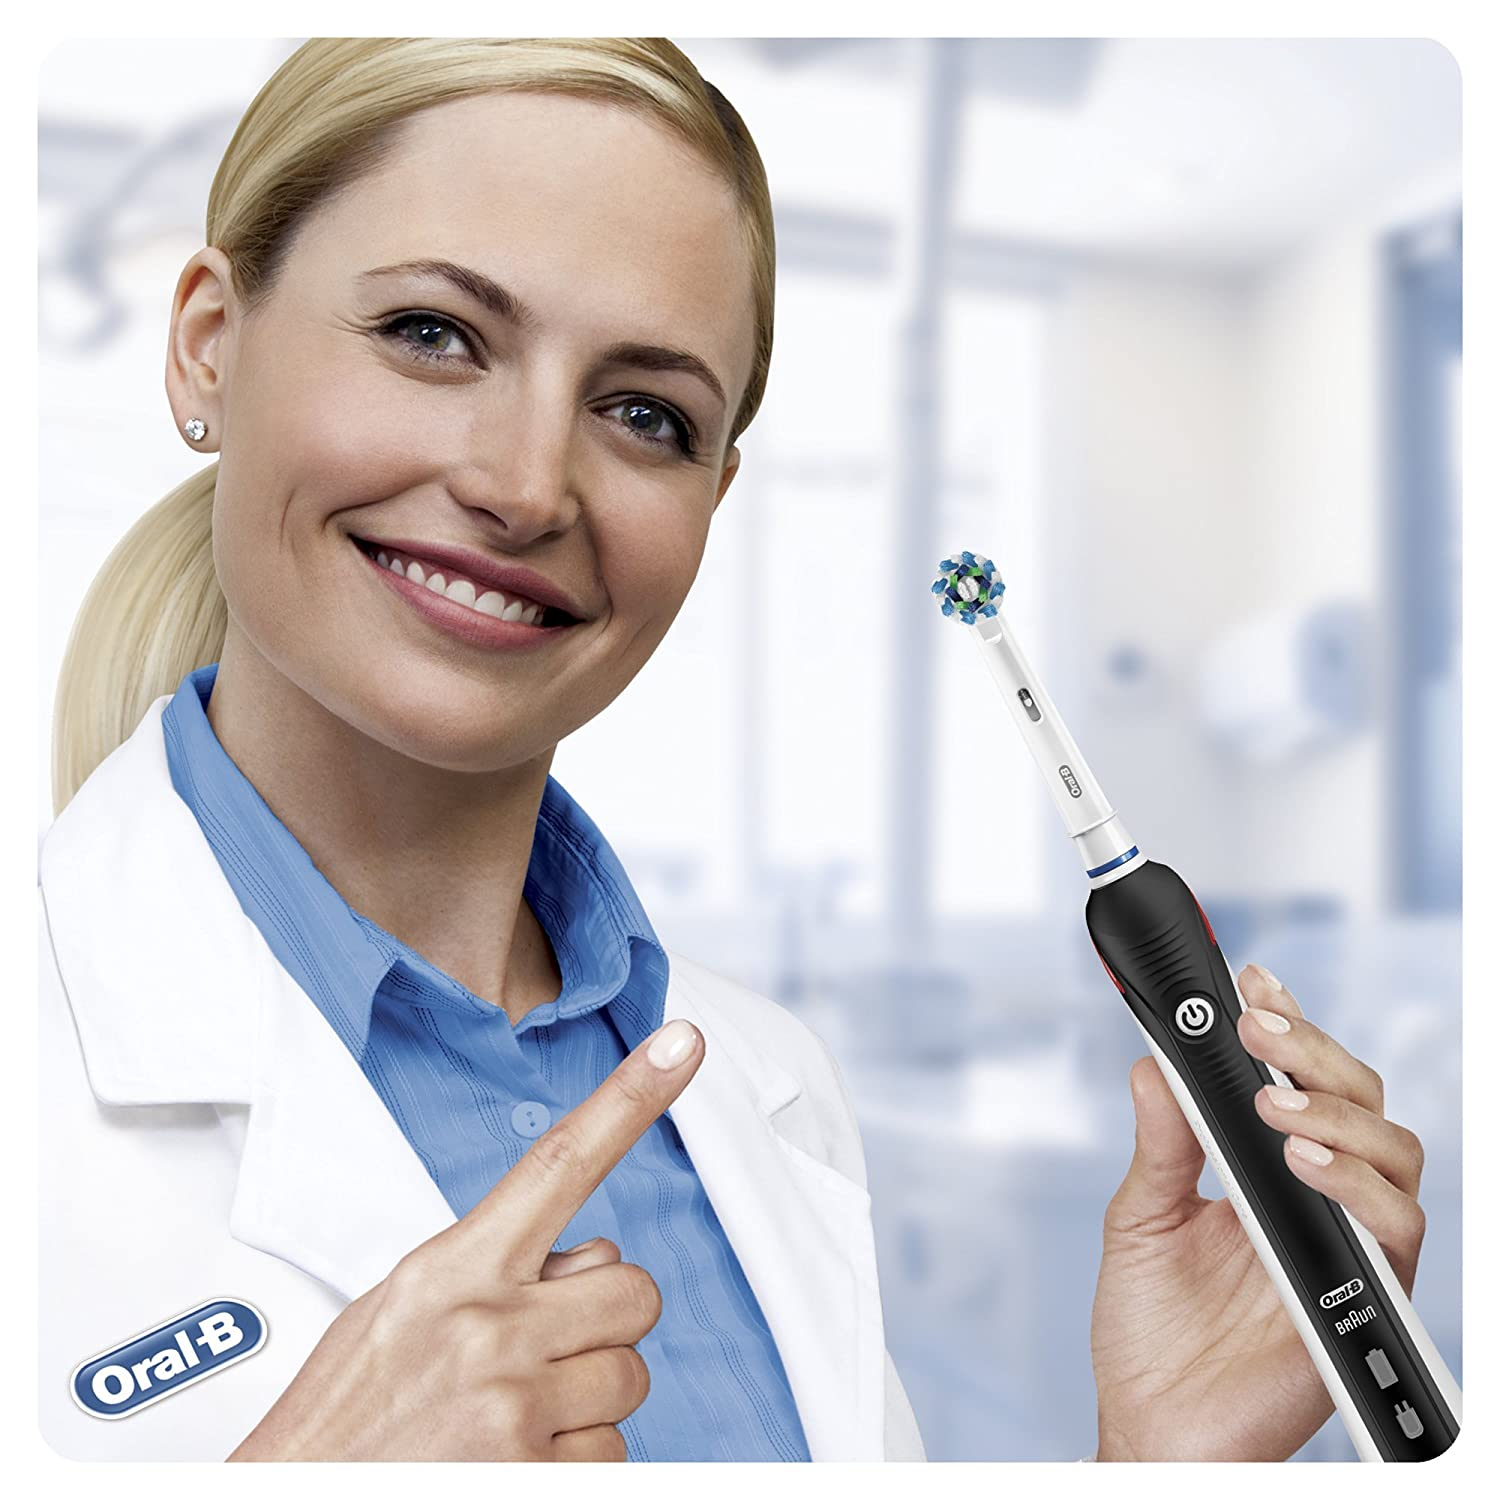 Oral B Pro 2 2500 Cross Action Electric Toothbrush Rechargeable Black Pro2500blk Ebay